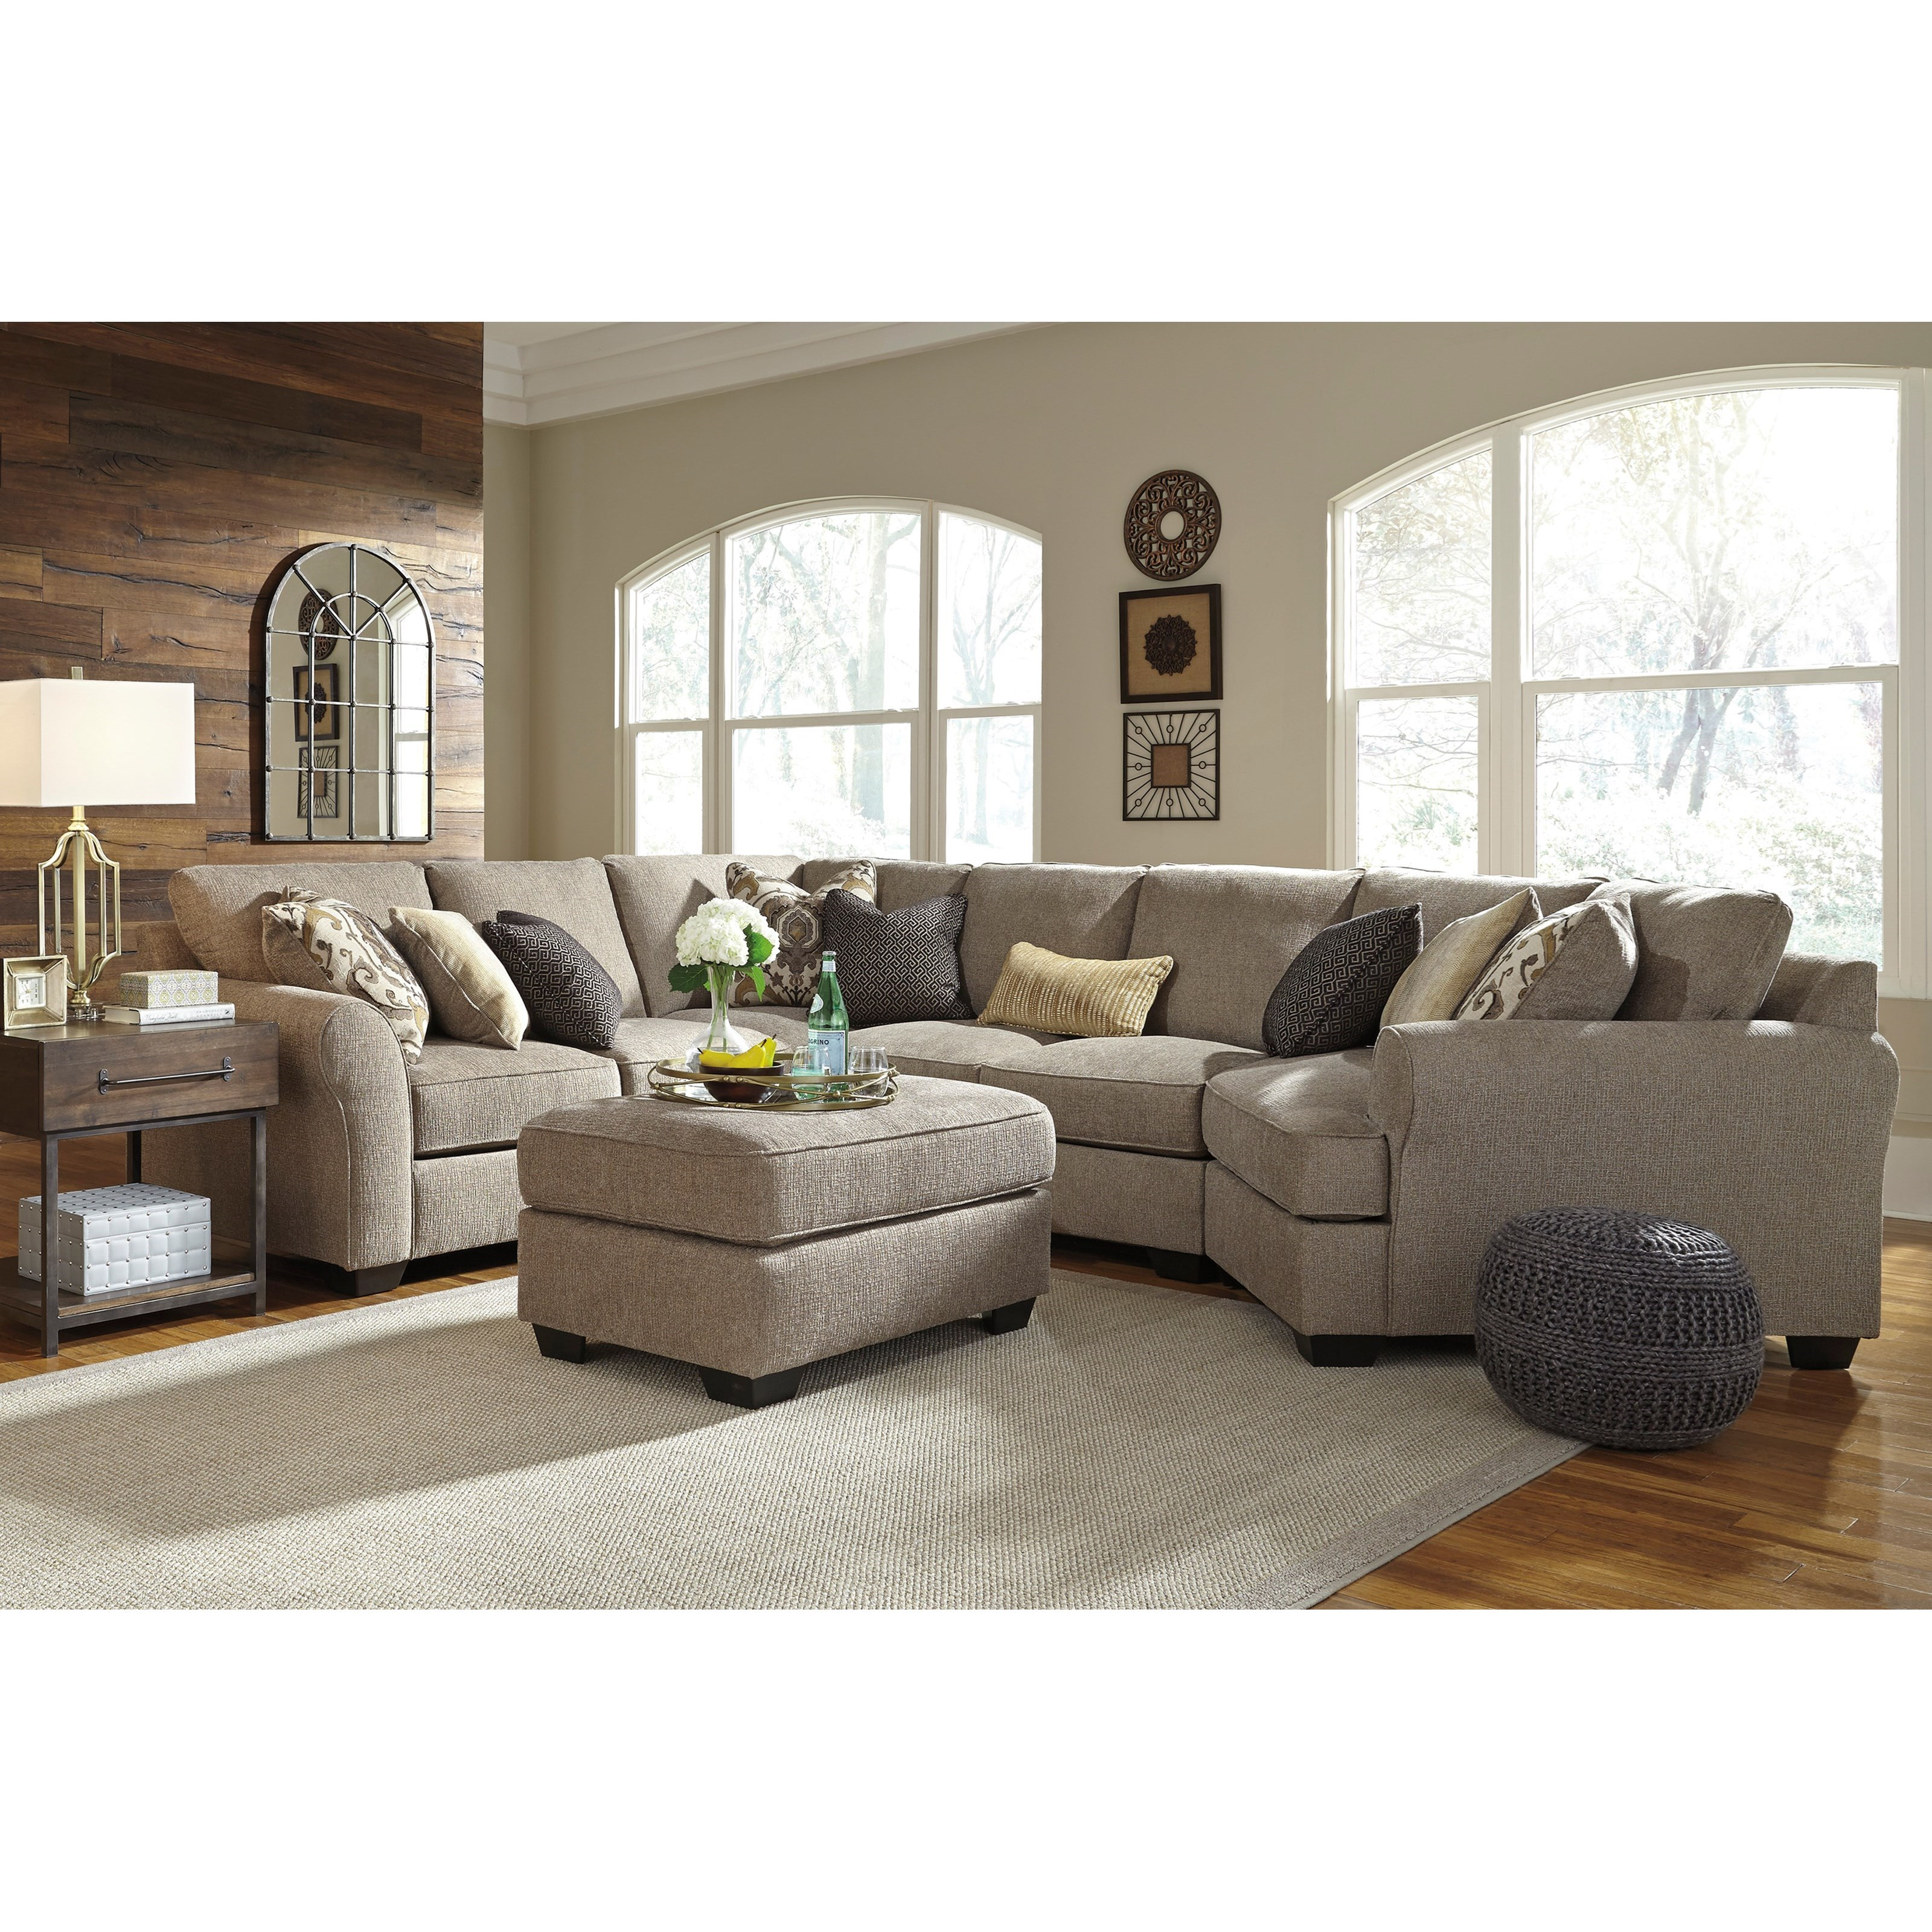 Pantomine 4-Piece Sectional with Ottoman by Benchcraft at Furniture Barn